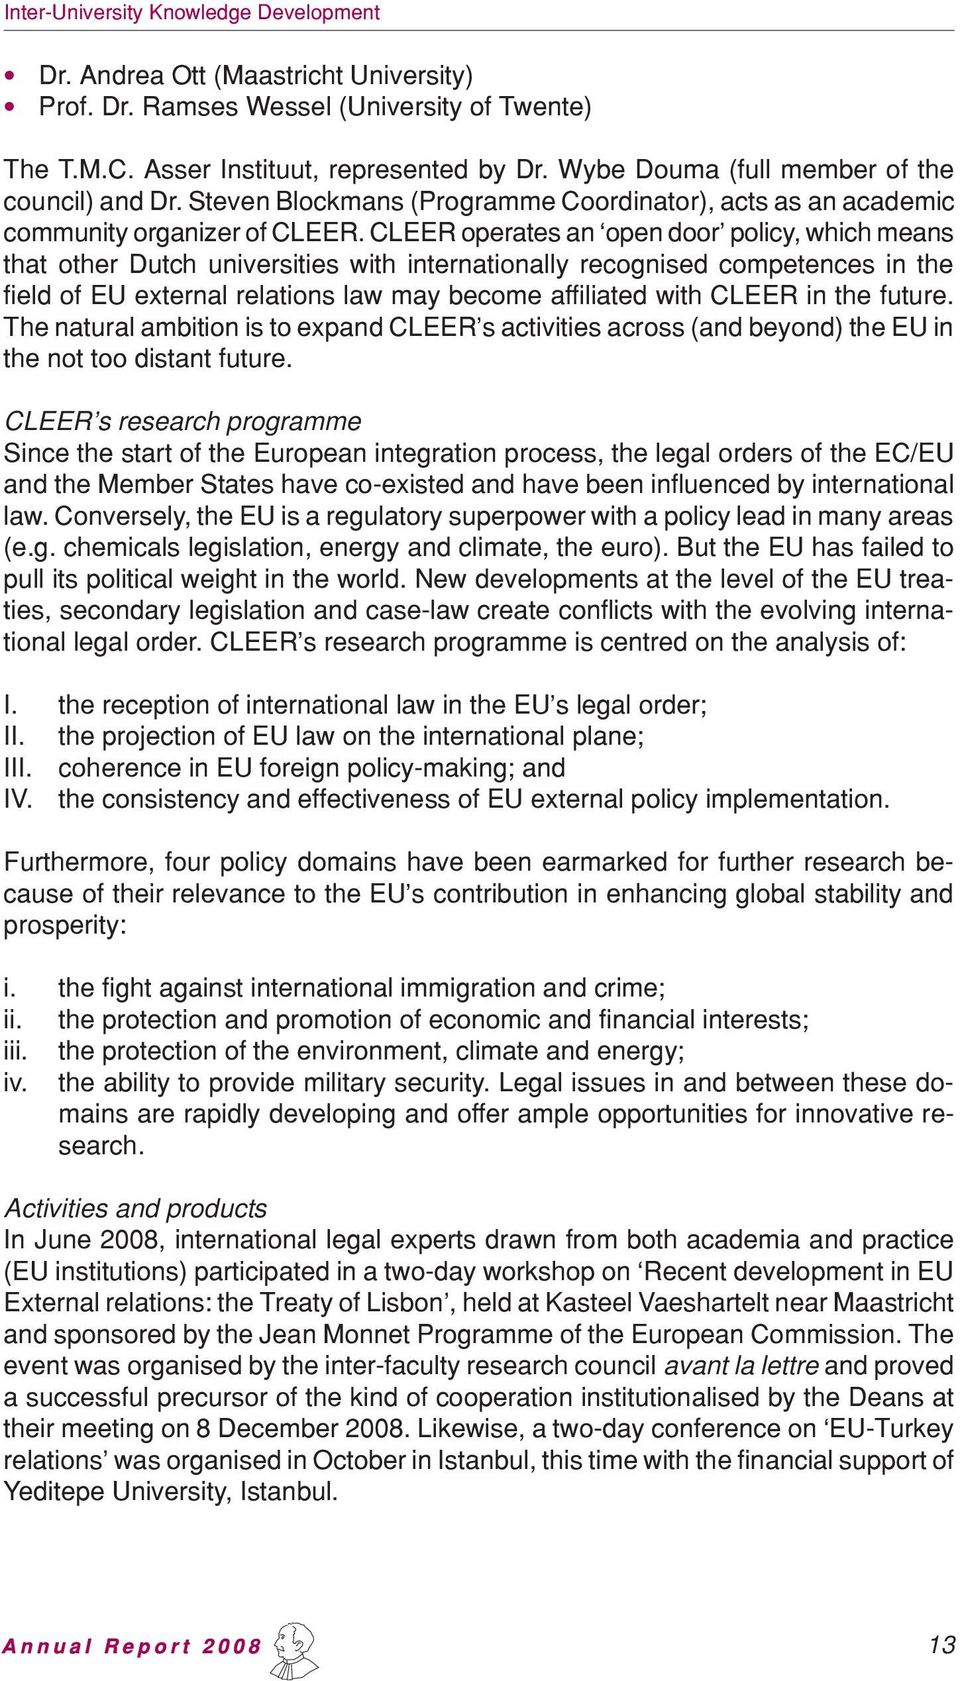 CLEER operates an open door policy, which means that other Dutch universities with internationally recognised competences in the field of EU external relations law may become affiliated with CLEER in